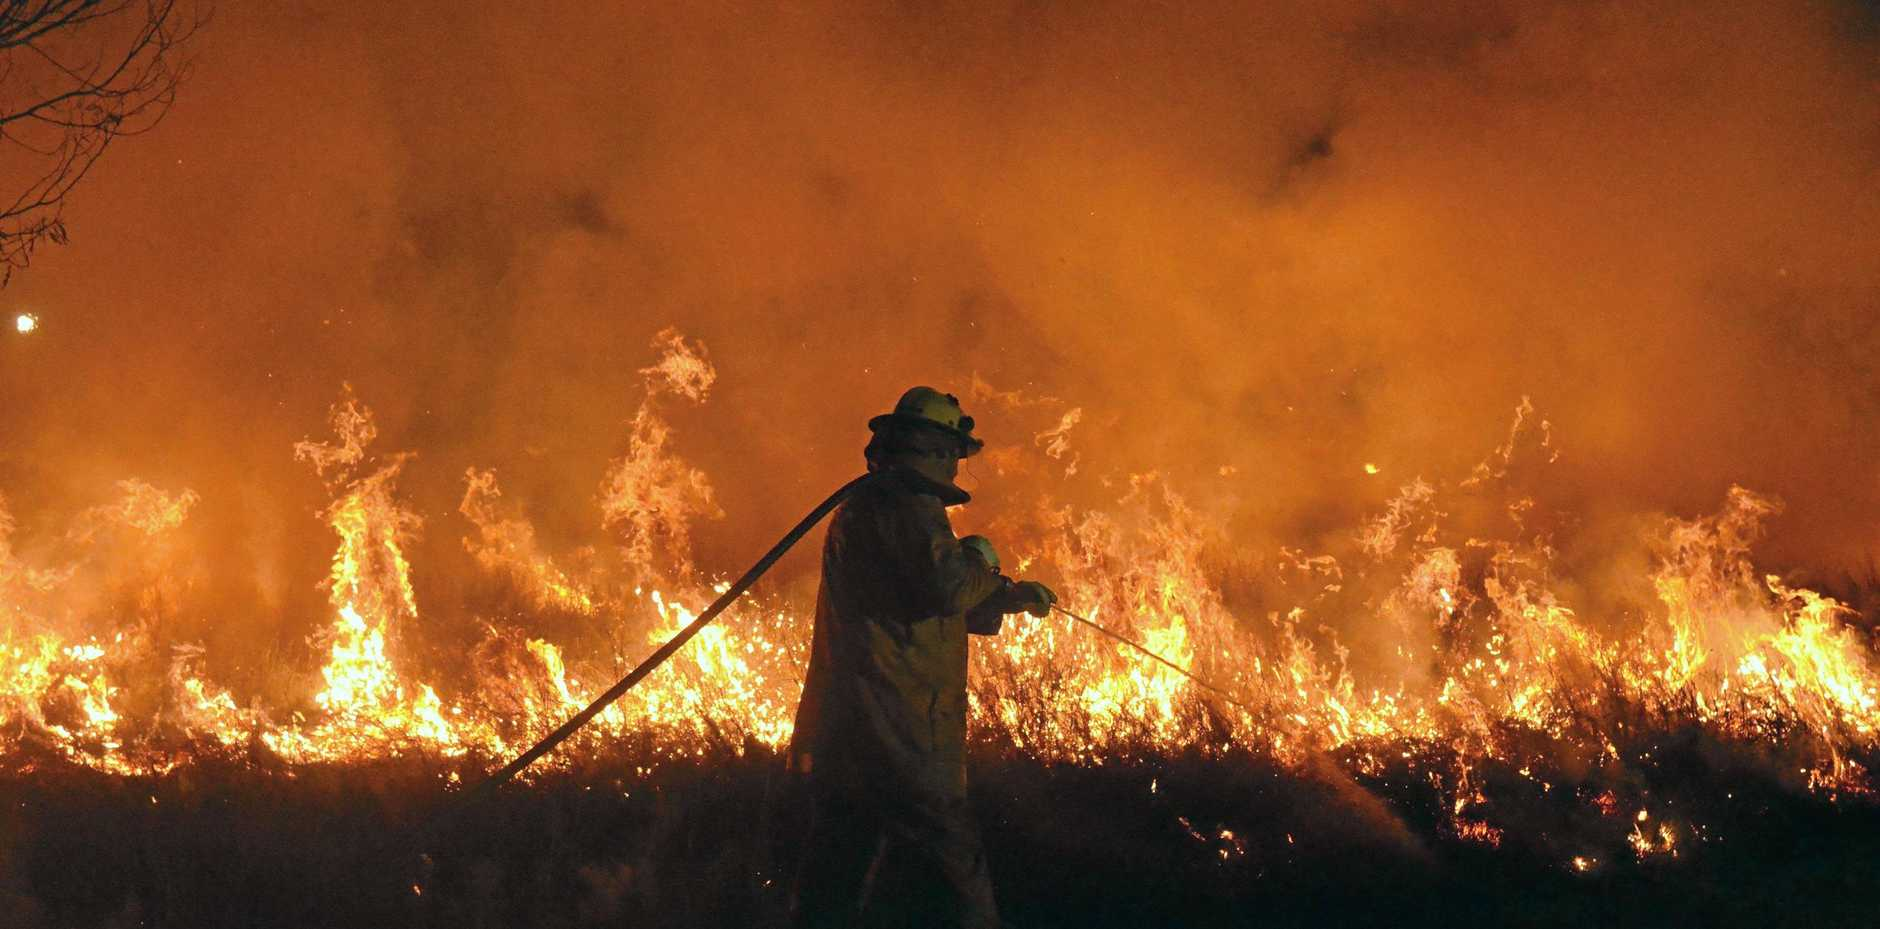 The Rural Fire Service has urged residents to heed the suspension of permits as very high fire dangers persist.